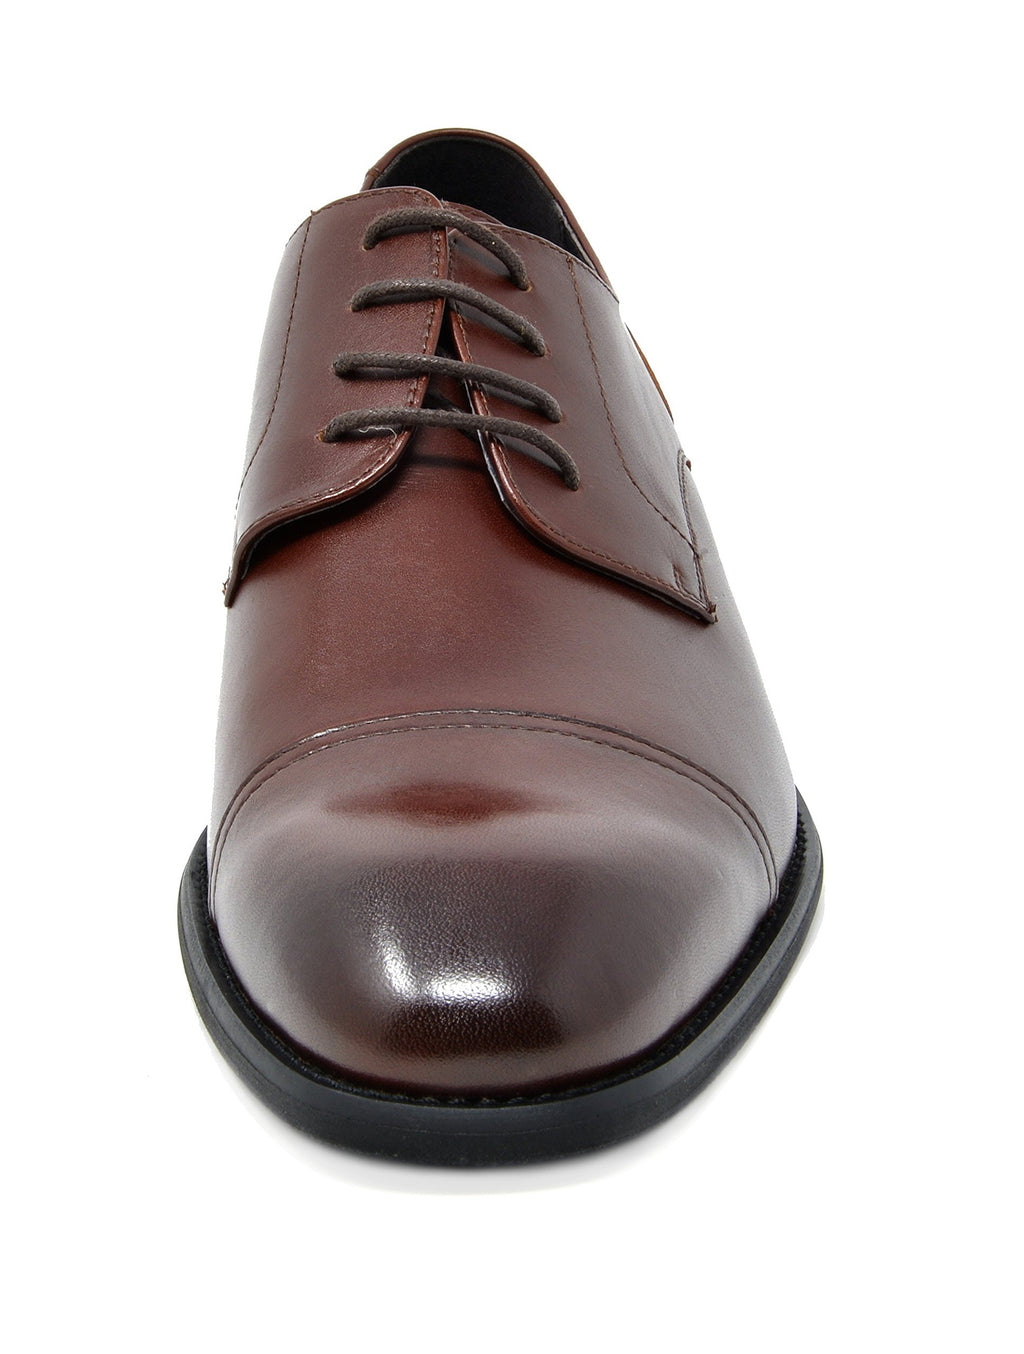 Men's Dress Shoes Cap Toe Oxfords Washington-Dark Brown 2